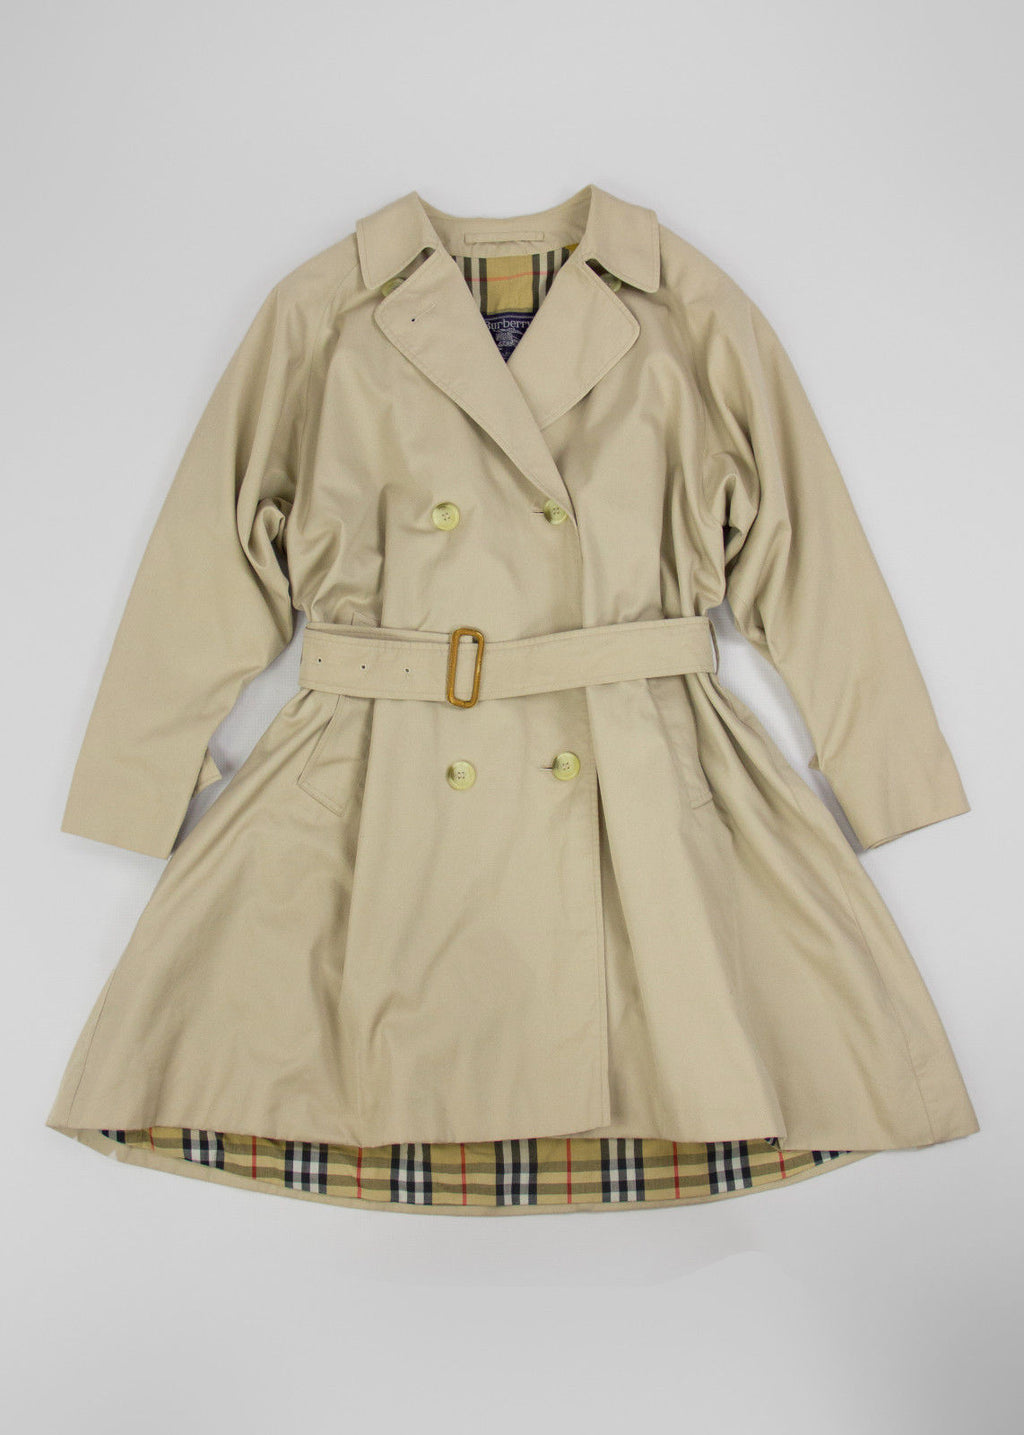 Burberry Vintage Women's Khaki Brown Trench Coat Size S-L - second_first